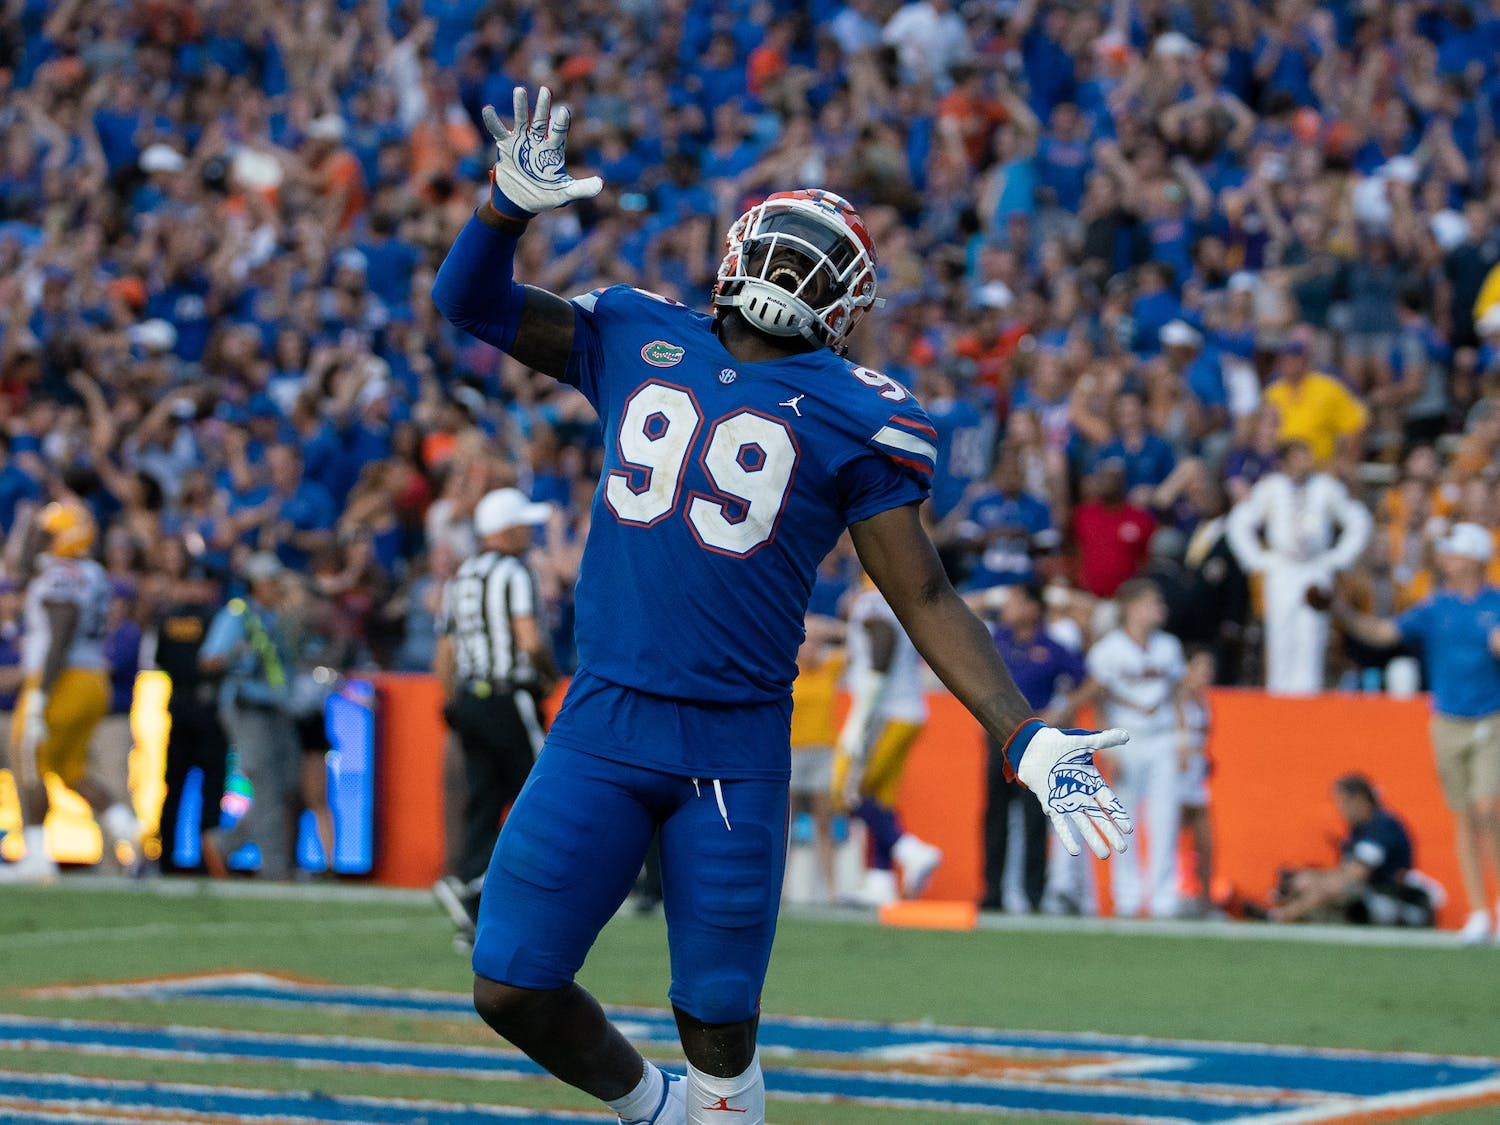 Edge rusher Jachai Polite's Twitter handle is @RetireMoms. He wants to make sure his mother is financially secure for the rest of her life.